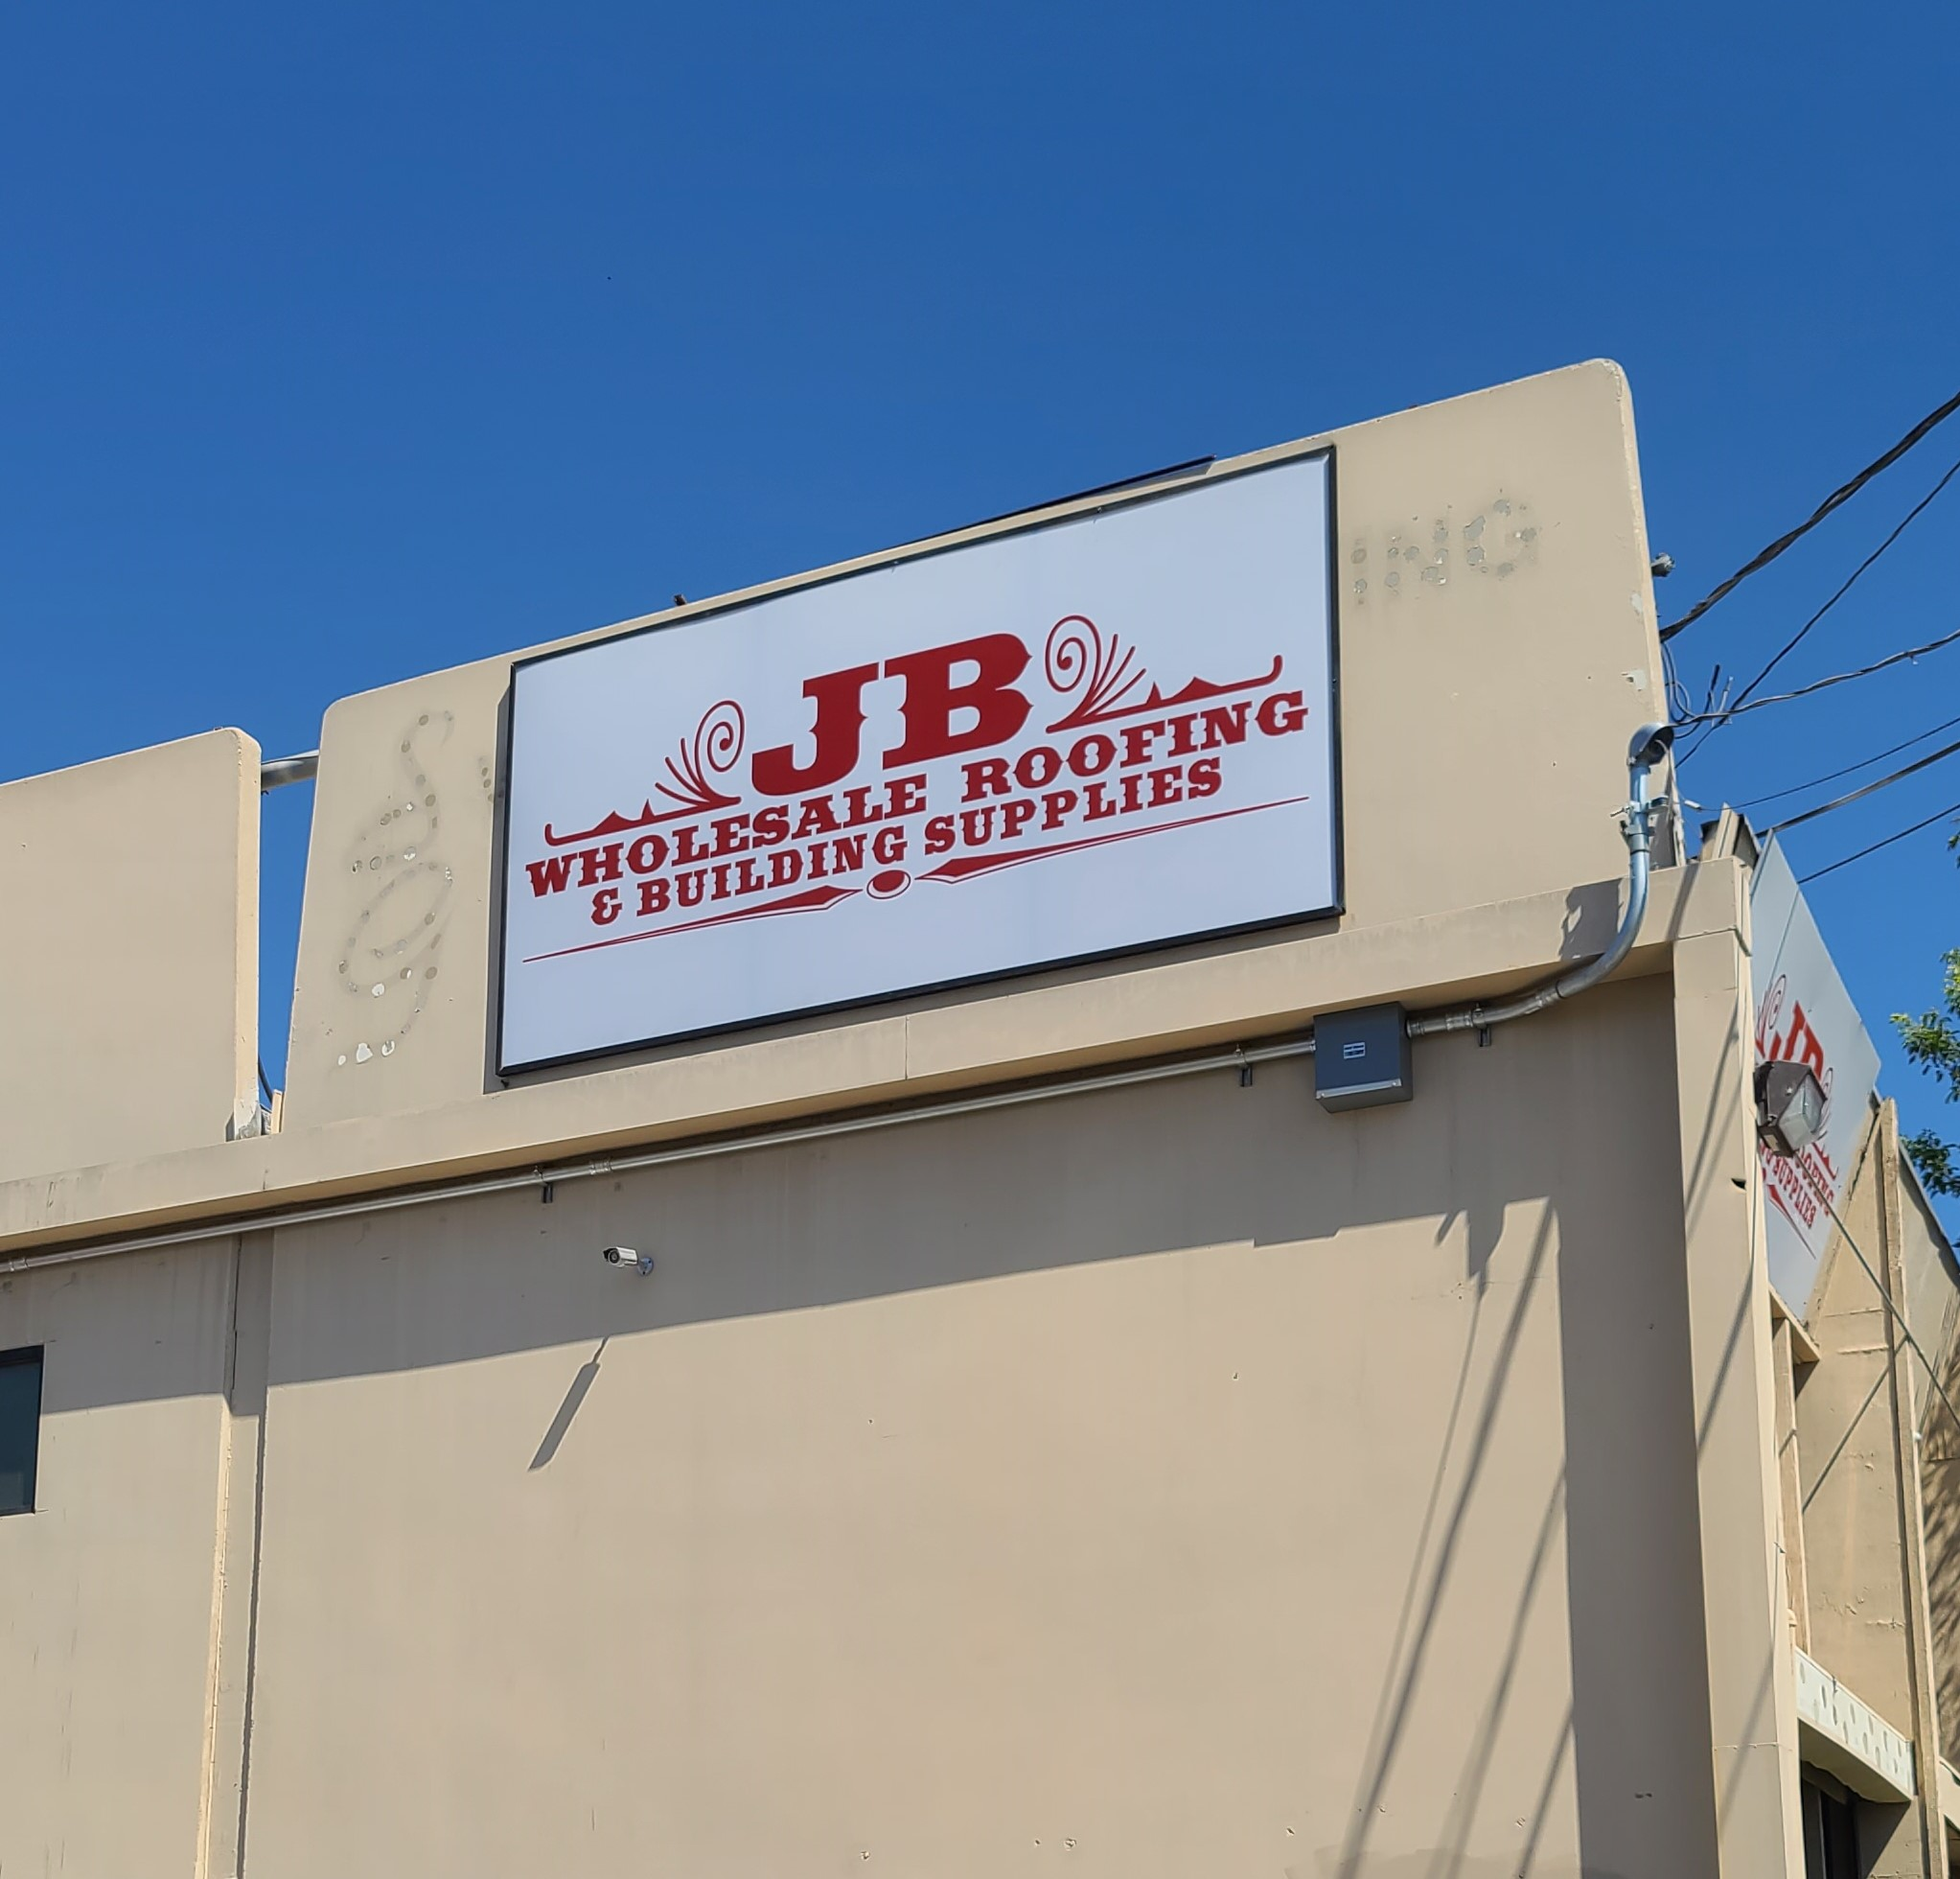 This is the building sign package we provided for JB Wholesale Roofing & Building Supplies branch.